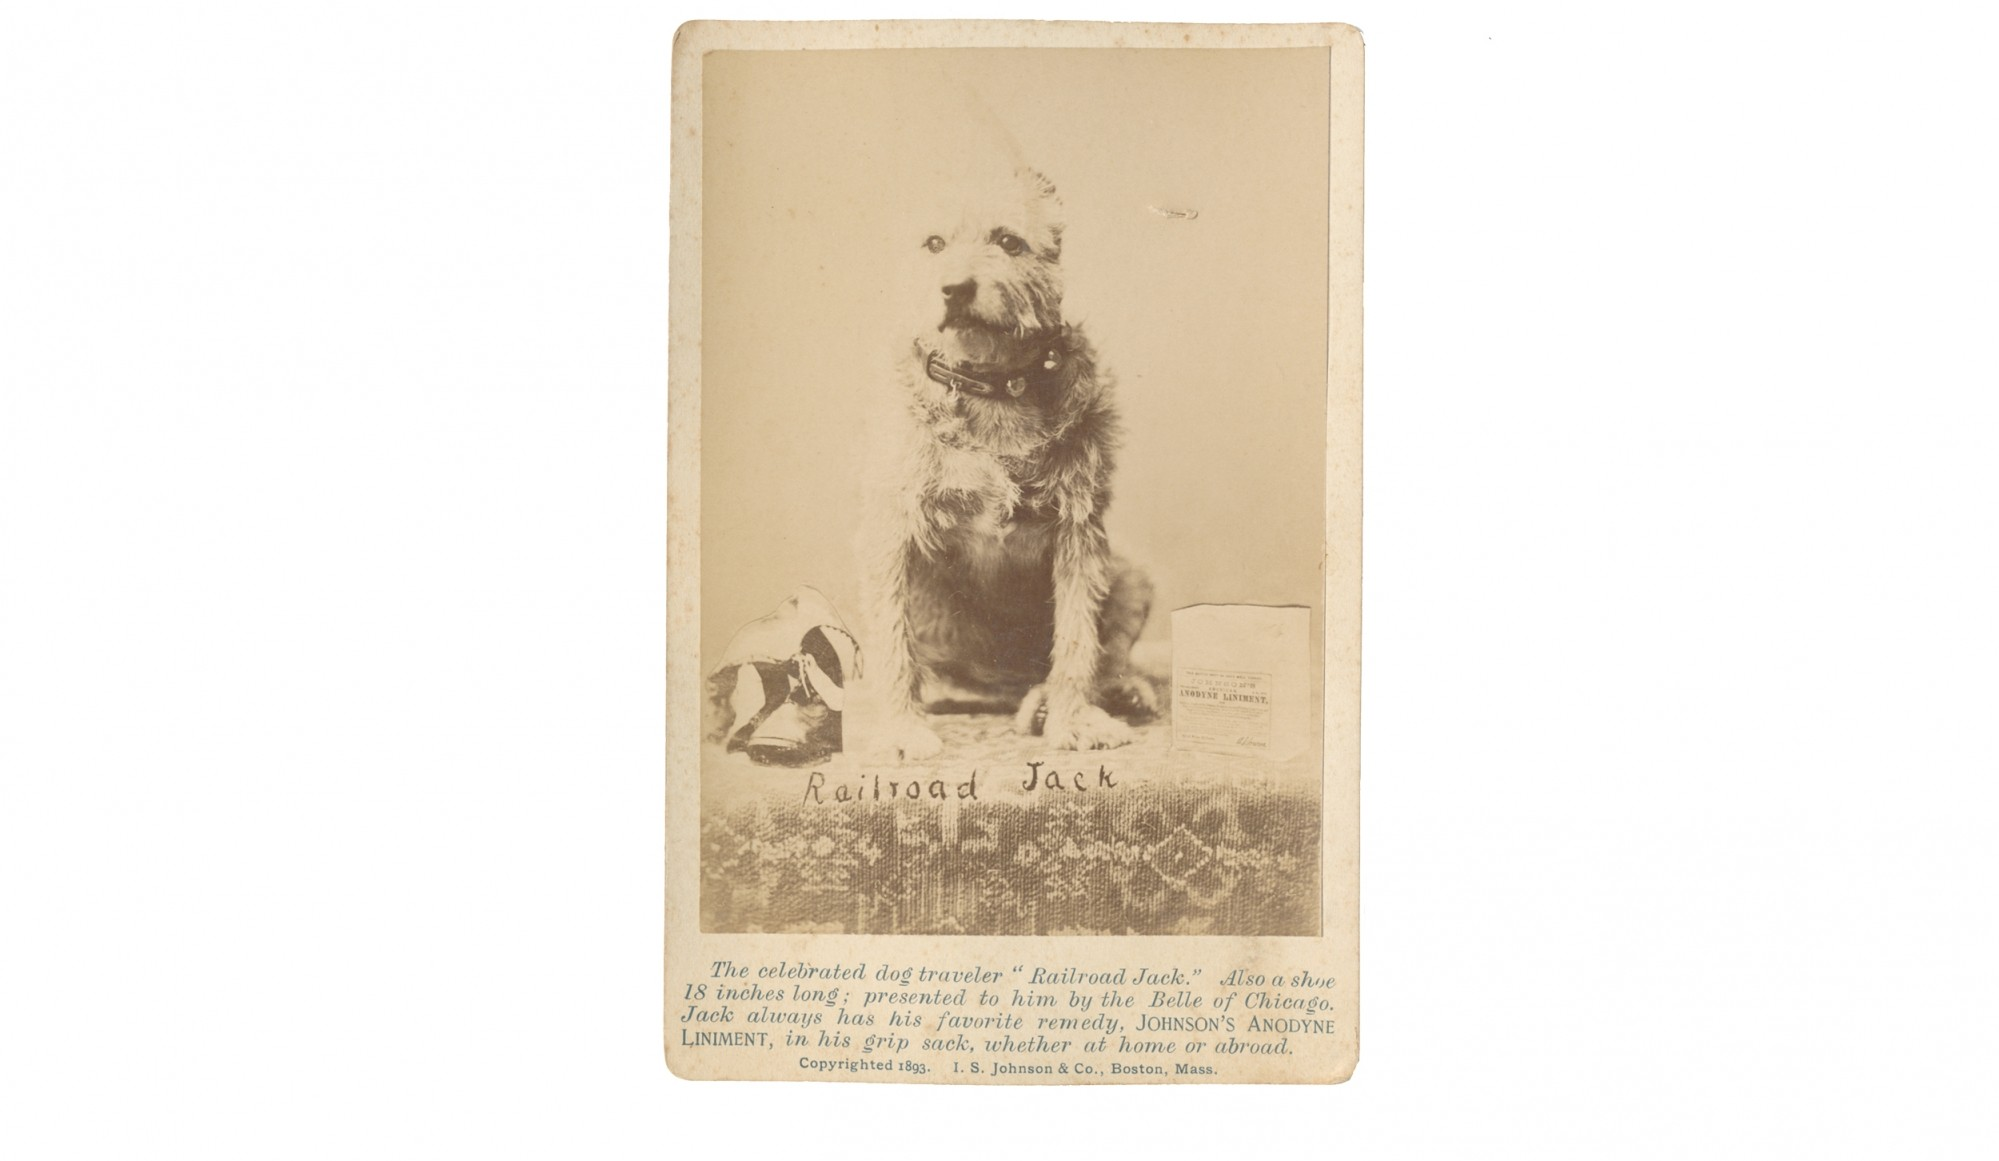 "CABINET CARD OF DOG ""RAILROAD JACK"" – JOHNSON'S ANODYNE LINIMENT ADVERTISEMENT"